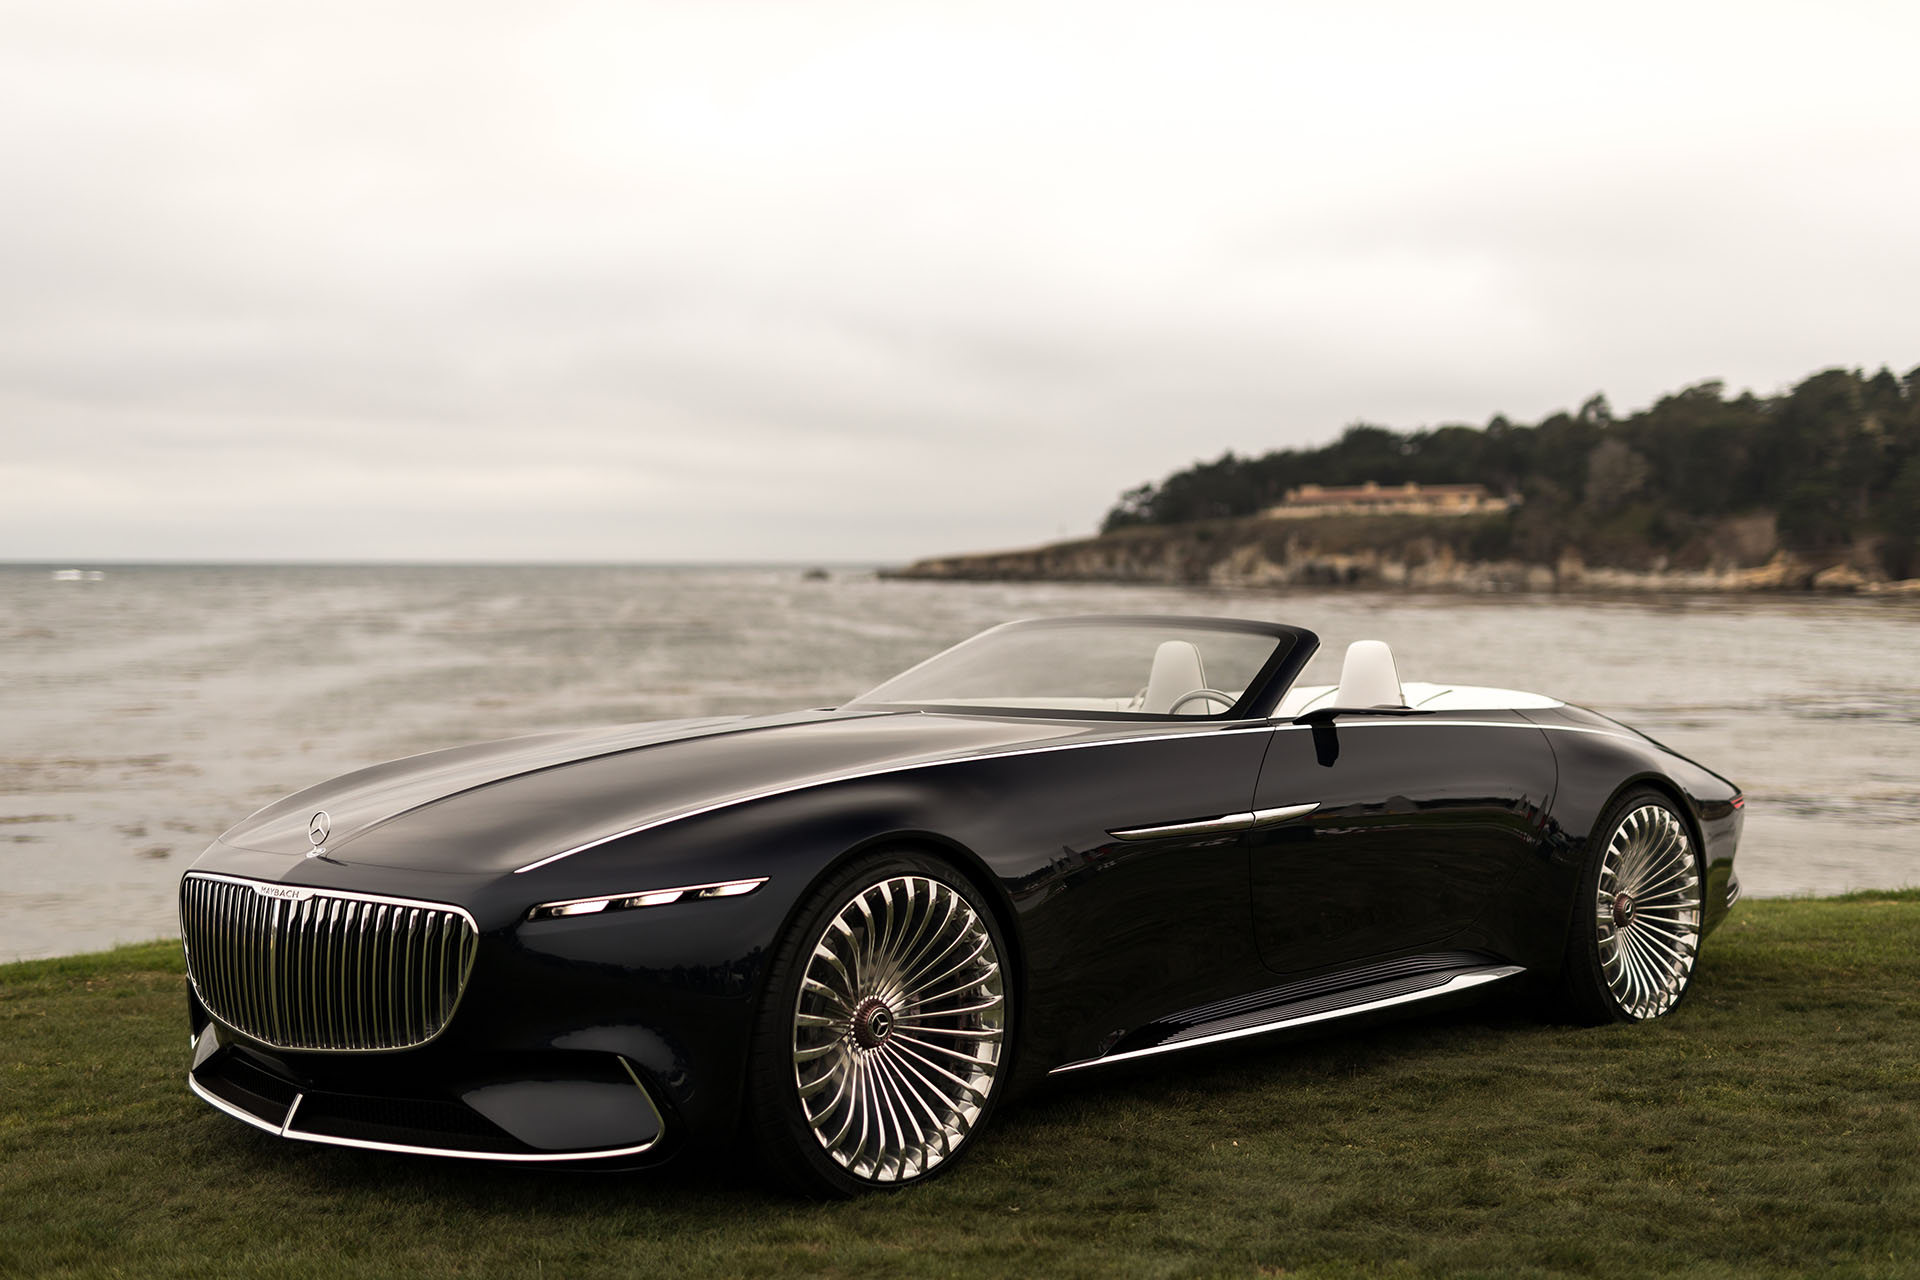 Mercedes Long Beach >> 2017 Monterey: The Vision Mercedes-Maybach 6 Cabriolet previews the future in opulent, open-top ...